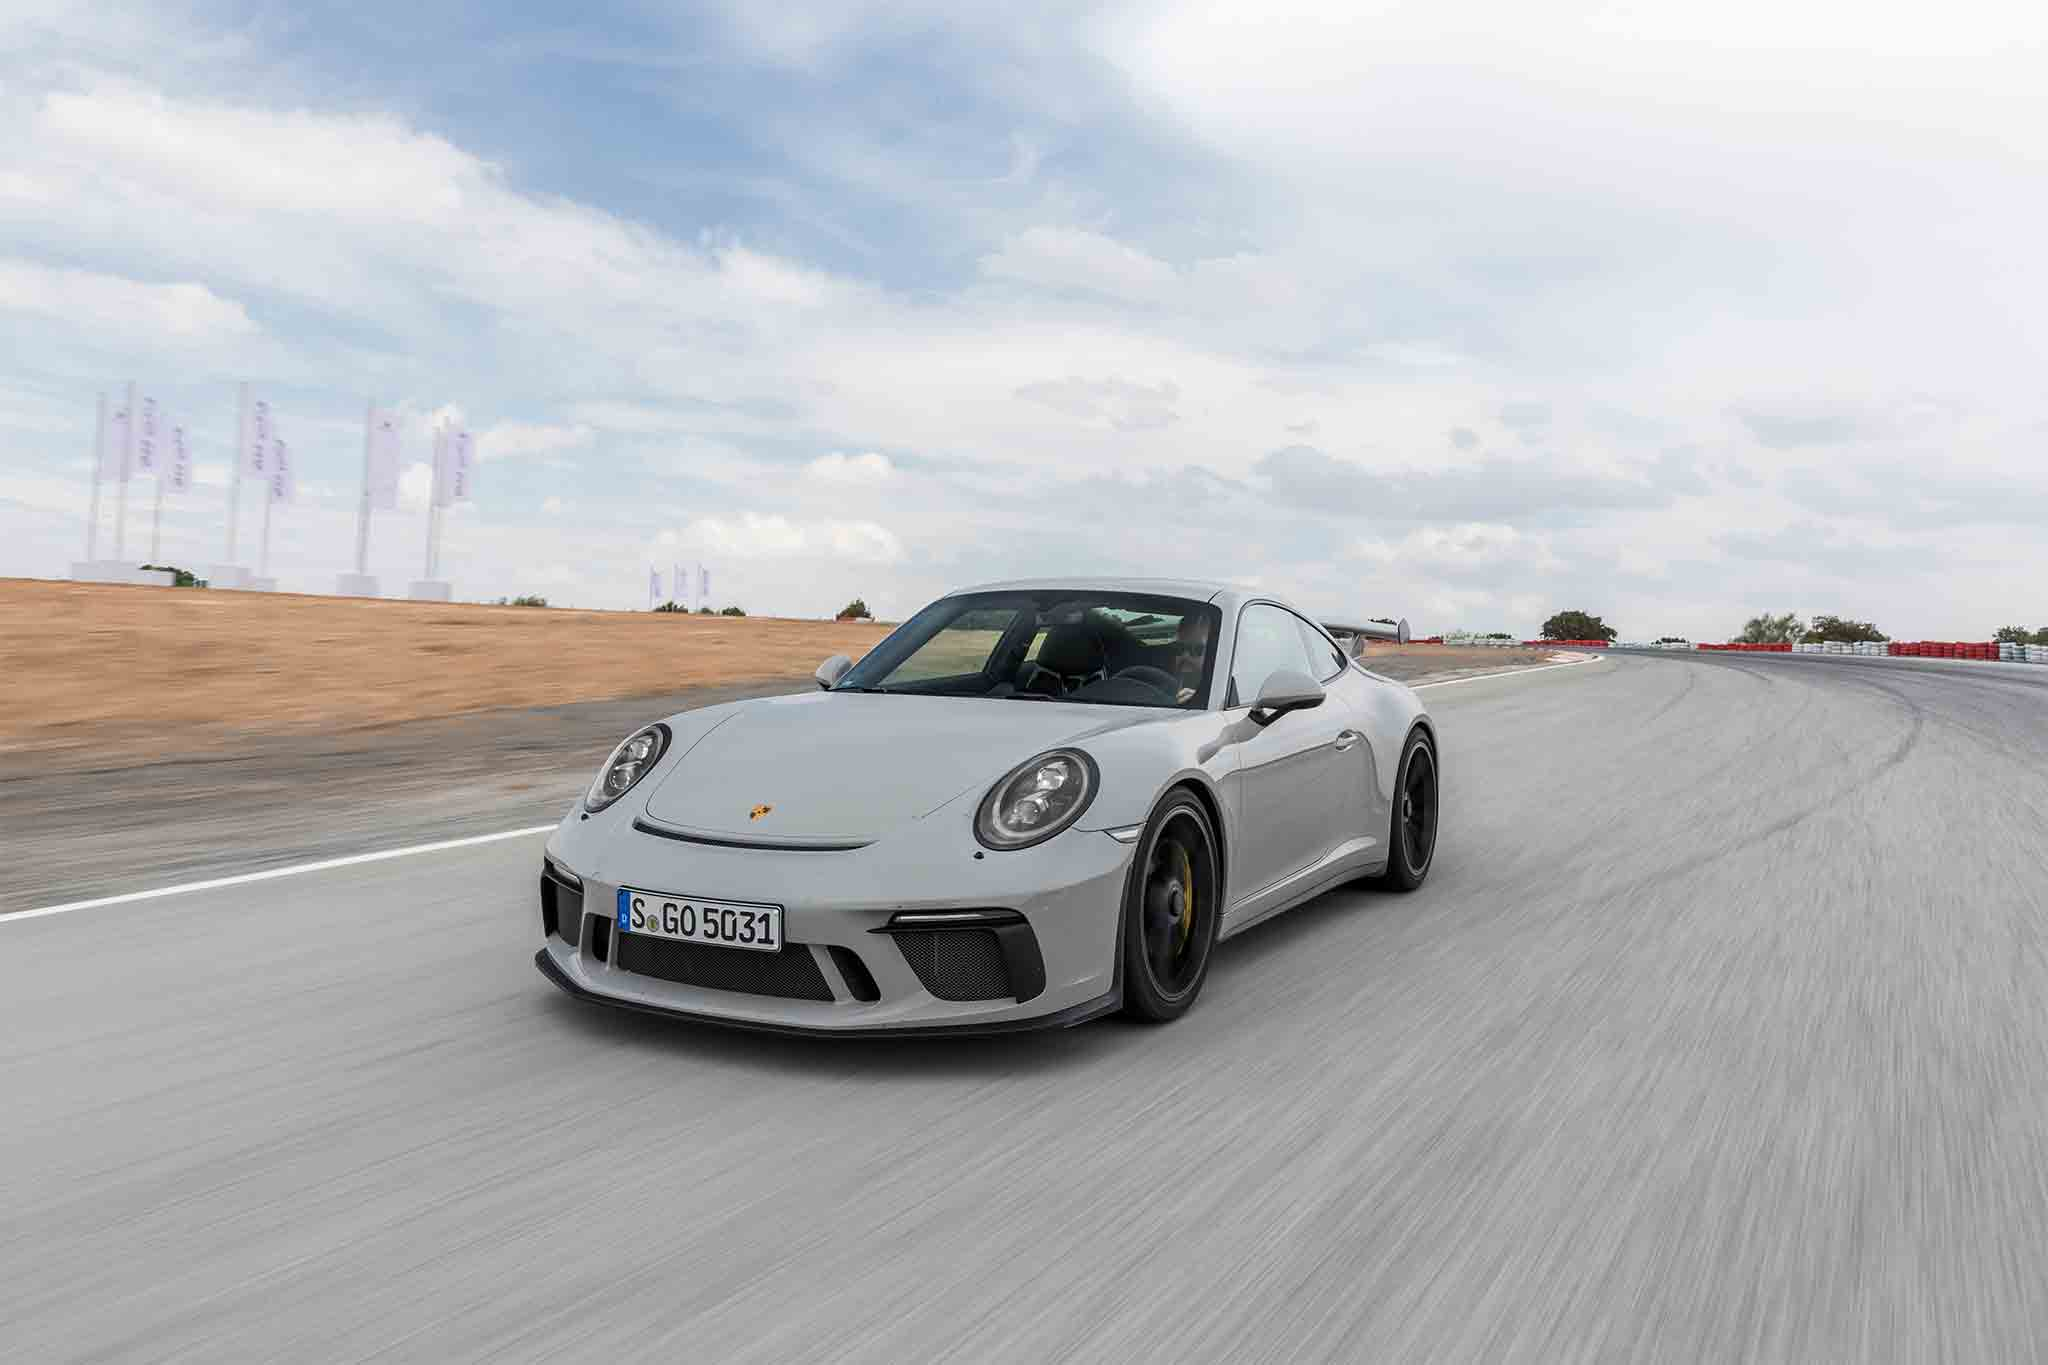 2018 Porsche 911 Gt3 First Drive Review Automobile Magazine Back Gt Gallery For Simple Pendulum Free Body Diagram Show More